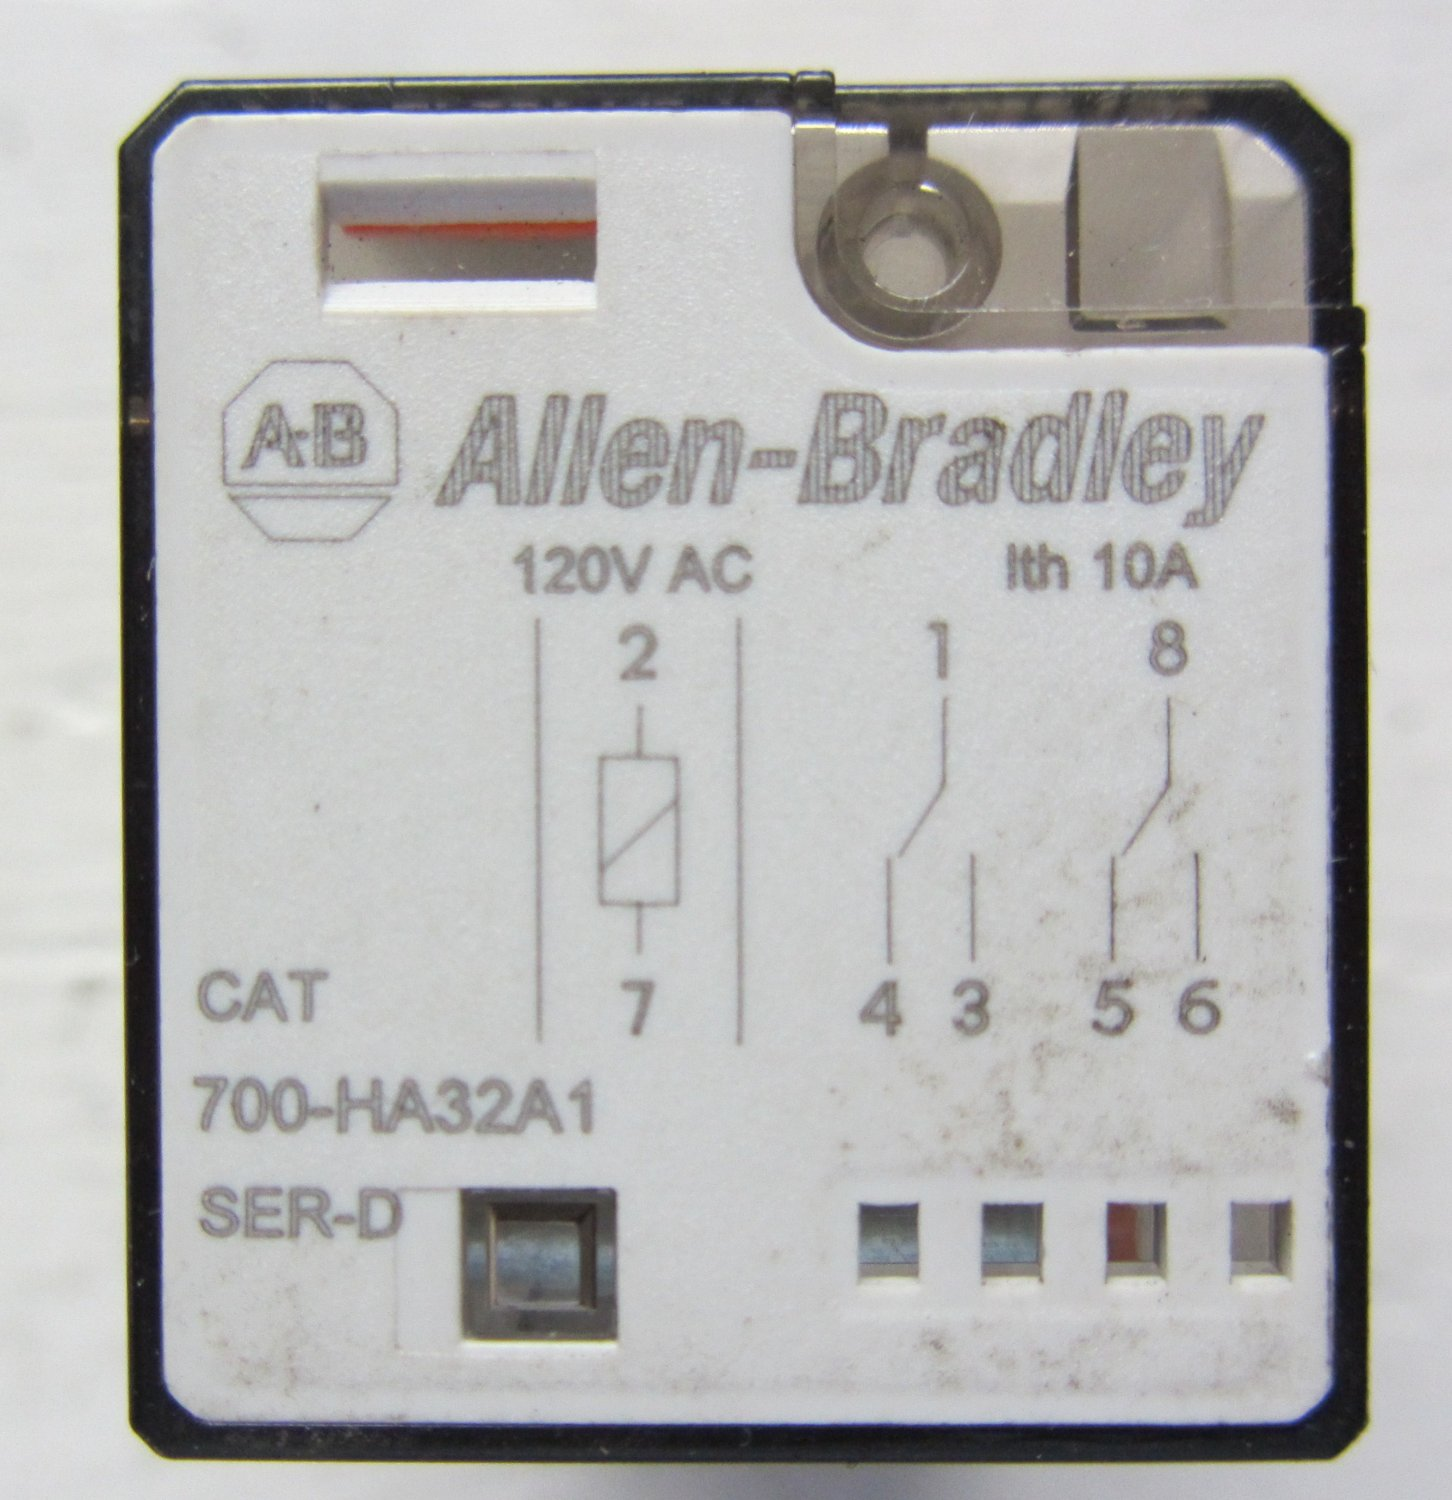 allen bradley 700 ha32a1 relay 10 amp 120 vac 50 60hz dpdt ser a type h 700ha32. Black Bedroom Furniture Sets. Home Design Ideas